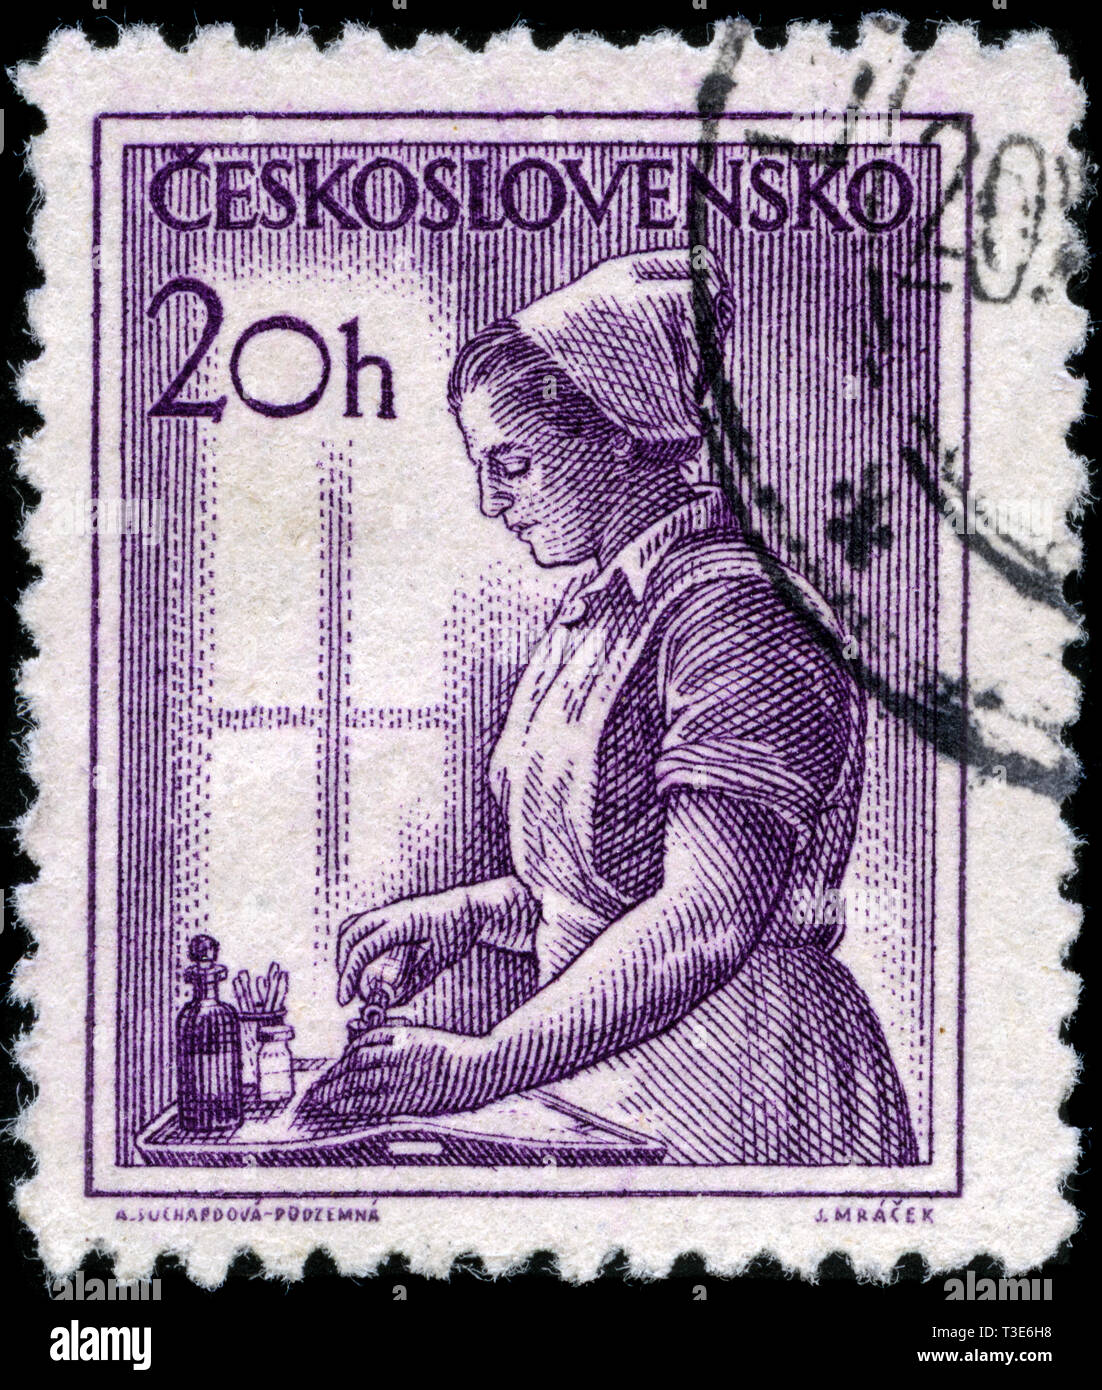 Postage stamp from the former state Czechoslovakia in the Professions series issued in 1954 - Stock Image